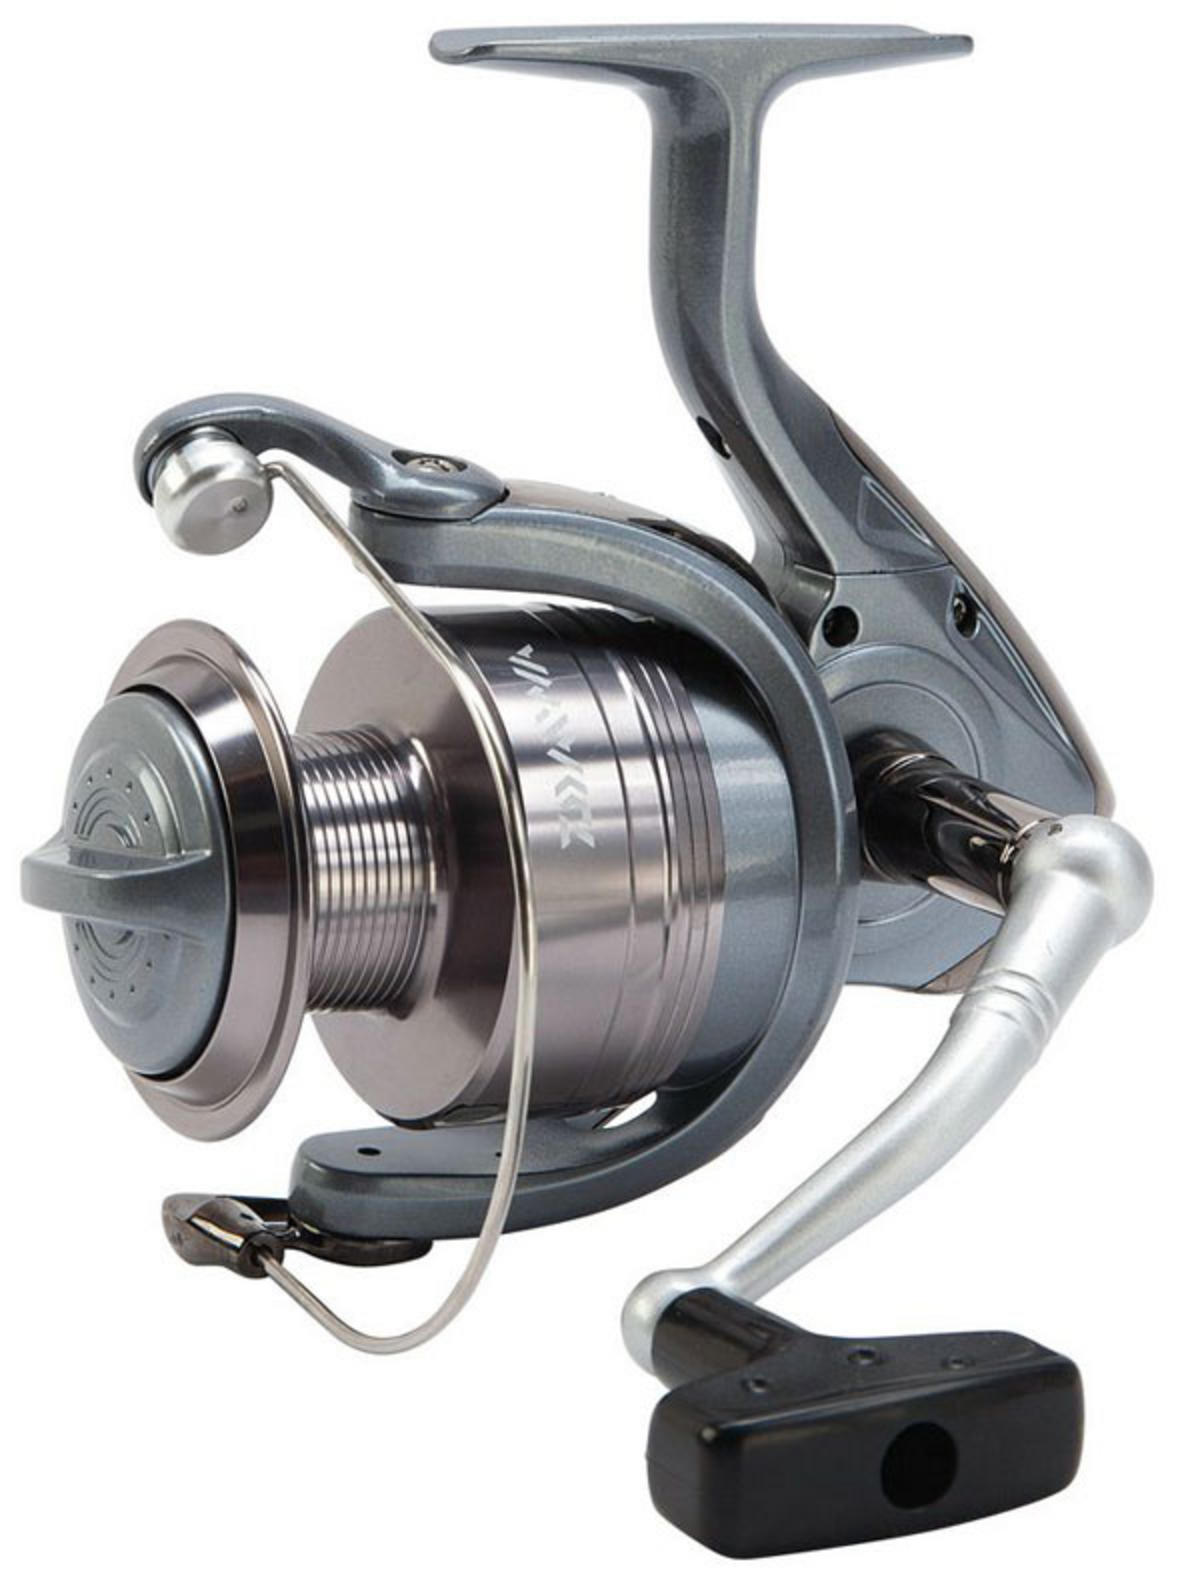 NEW DAIWA AG 5000AB SEA CARP FISHING SPINNING REEL AG5000AB